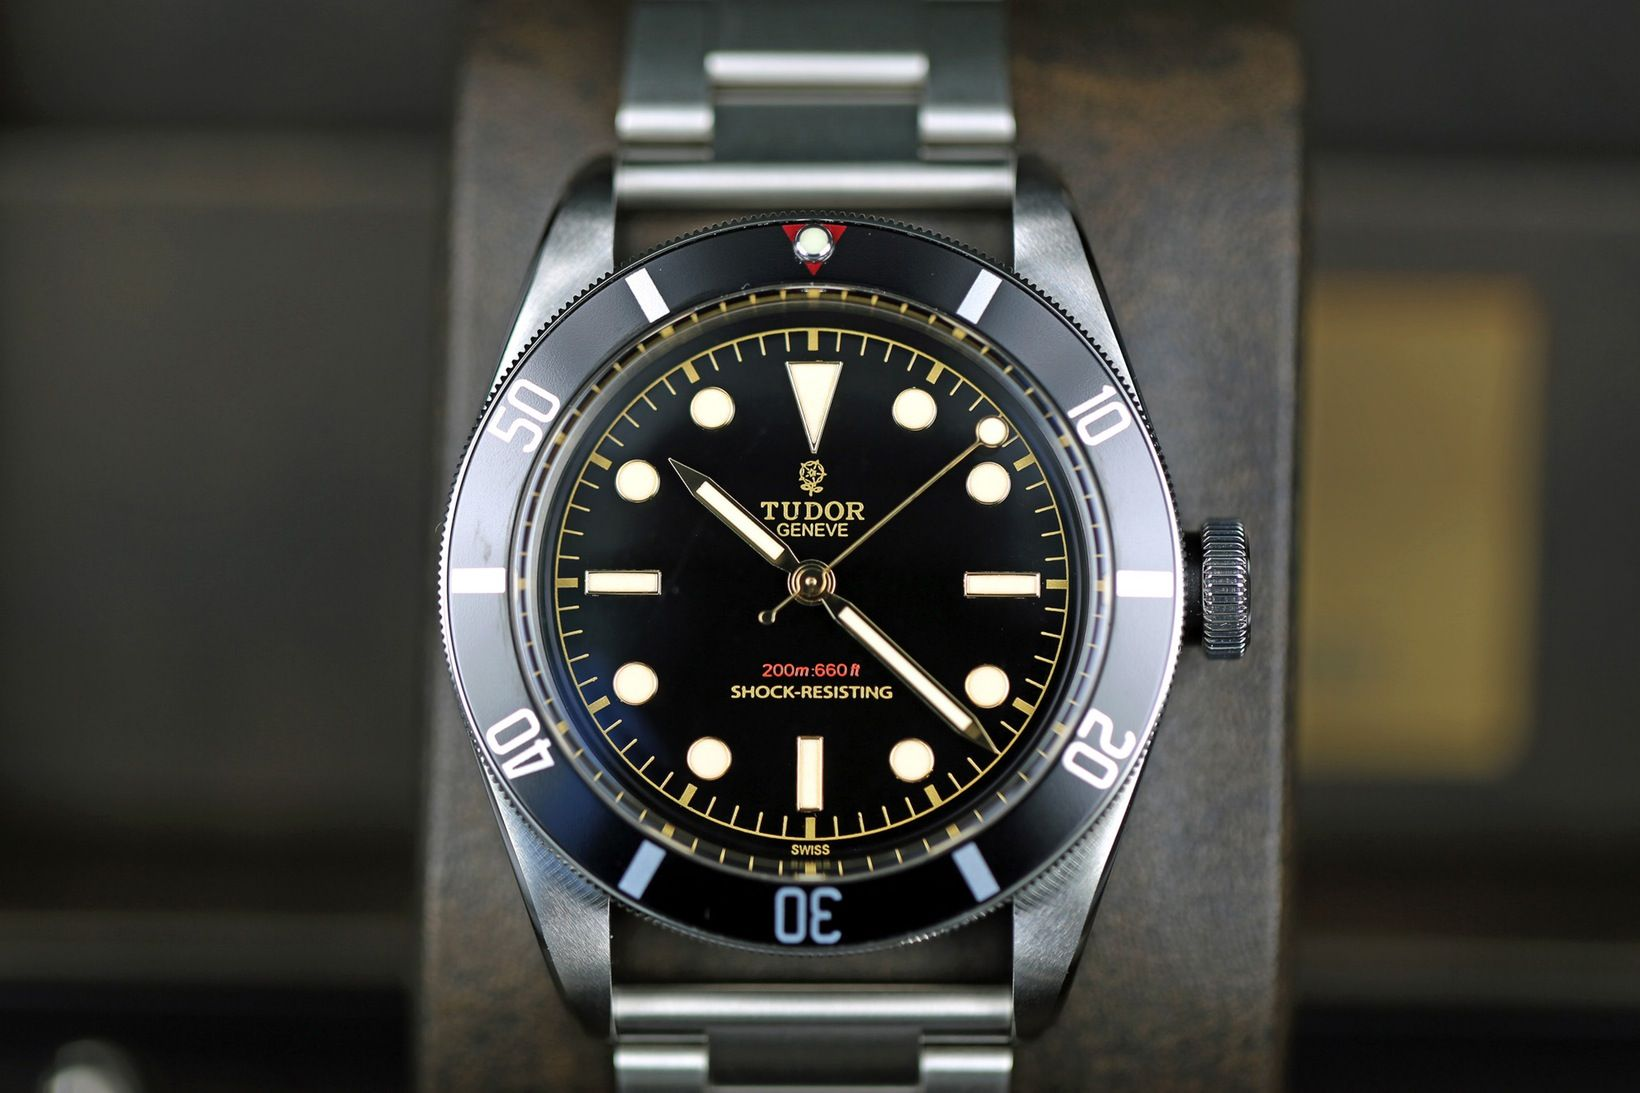 Photo Report A Quick Look At The Unique Tudor Heritage Black Bay One Reference 7923 001 To Be Sold At Only Watch 2015 Live Photos Hodinkee Tudor Black Bay Tudor Heritage